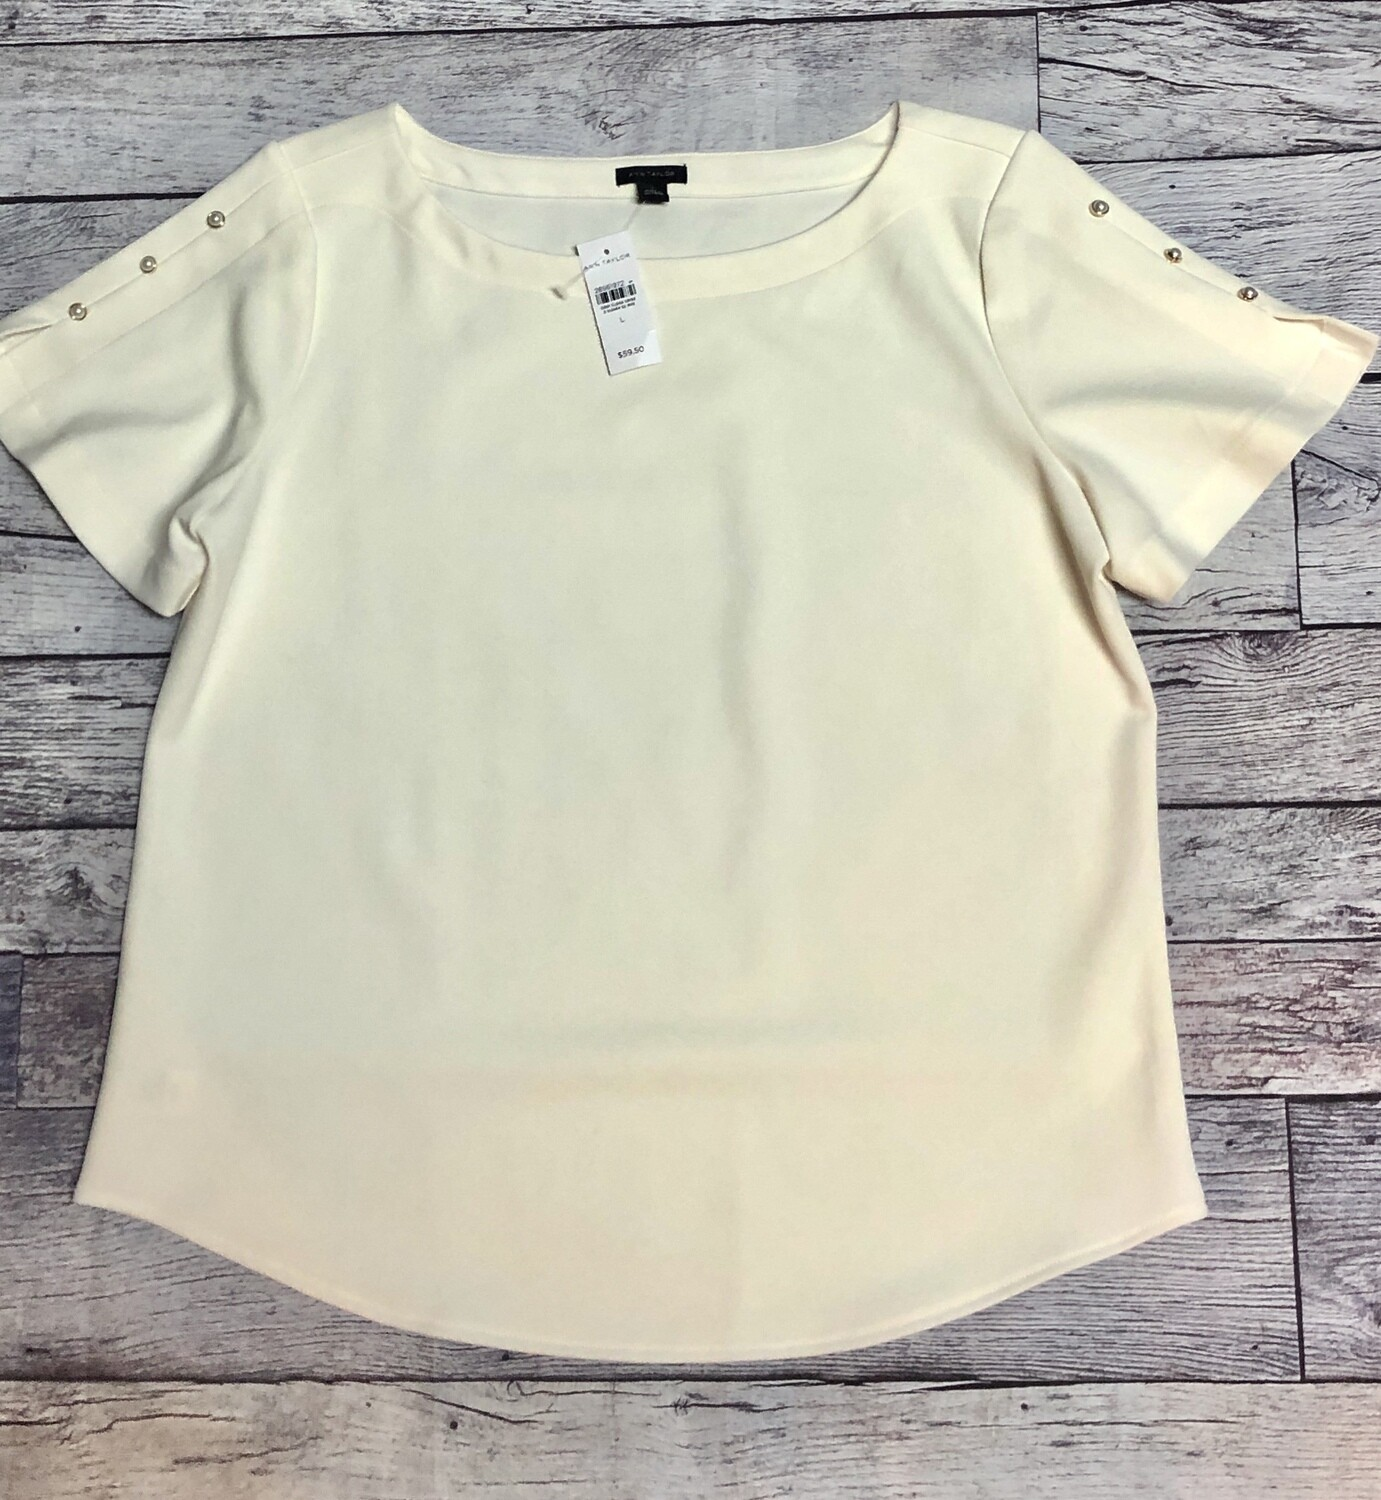 New ANN TAYLOR Cream Pearl Blouse size Large $59.50